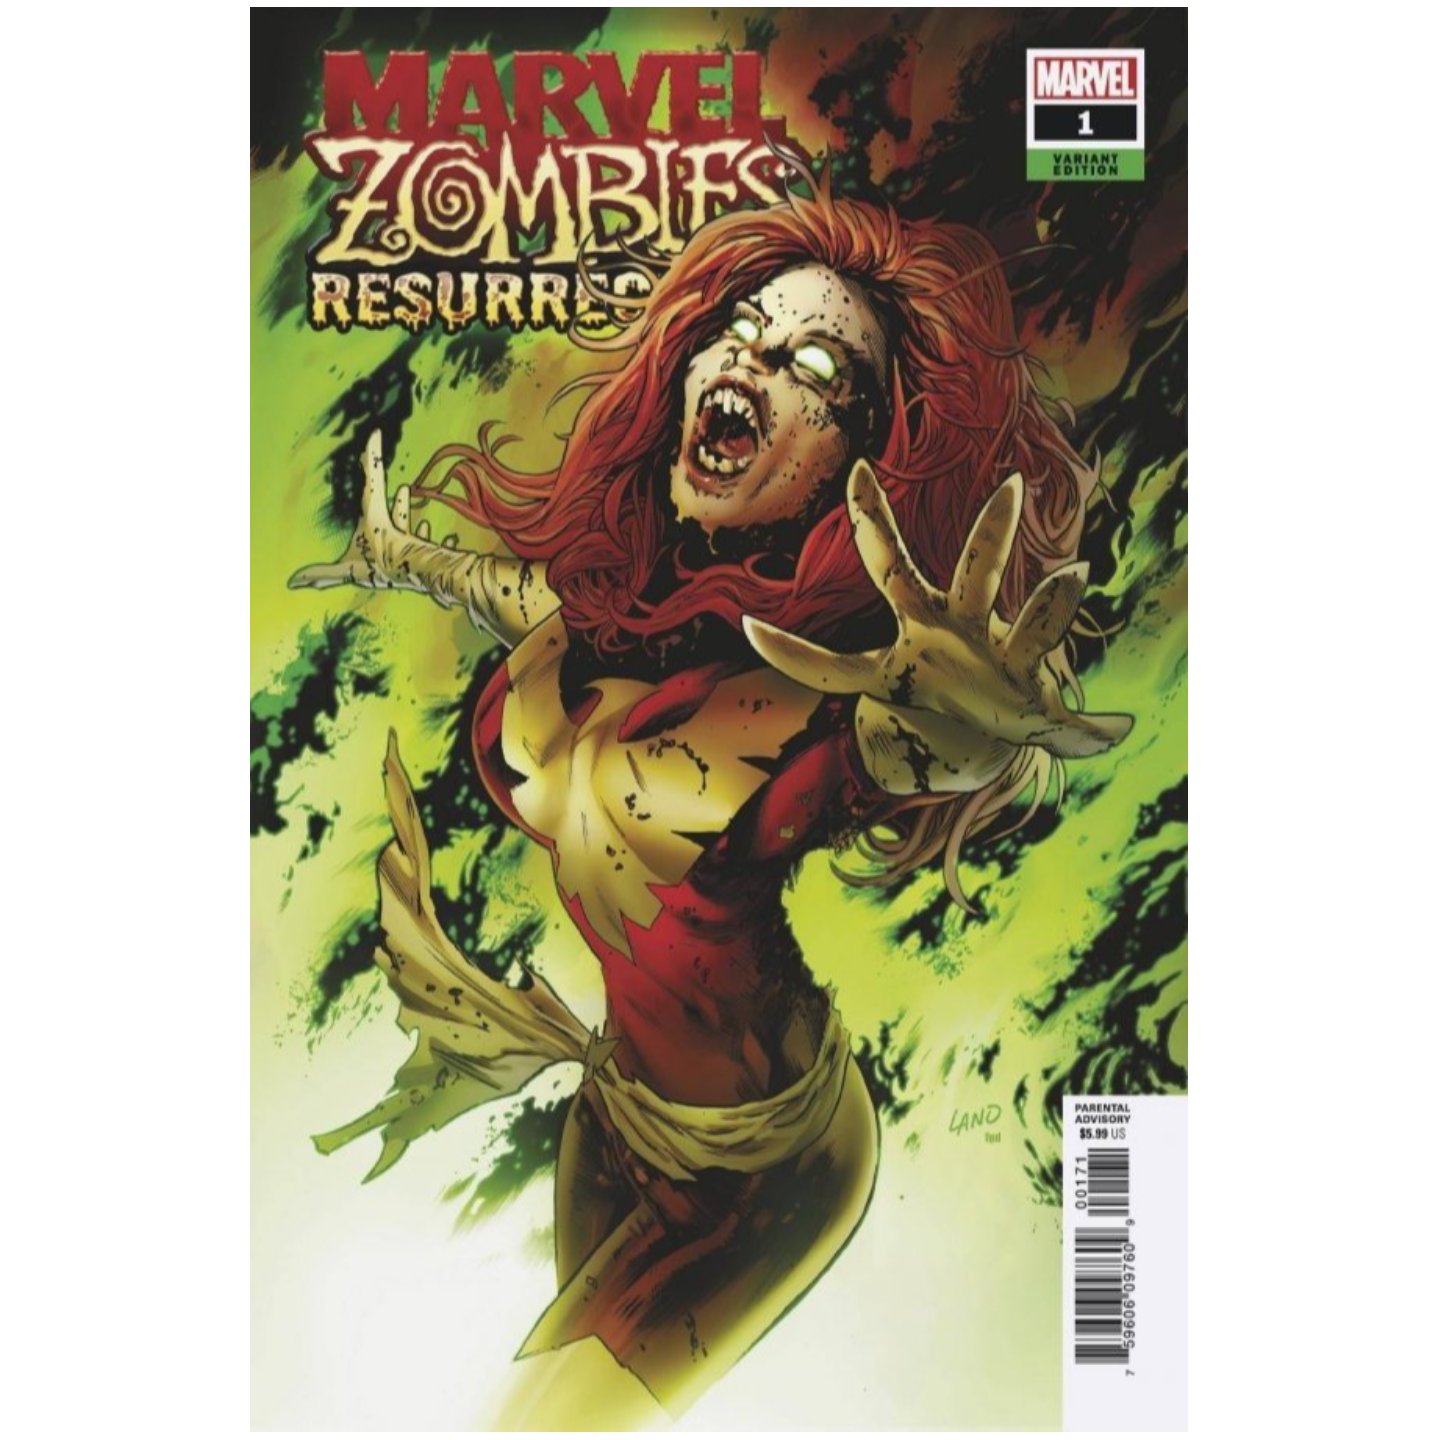 MARVEL ZOMBIES RESURRECTION #1 (OF 4) LAND VAR